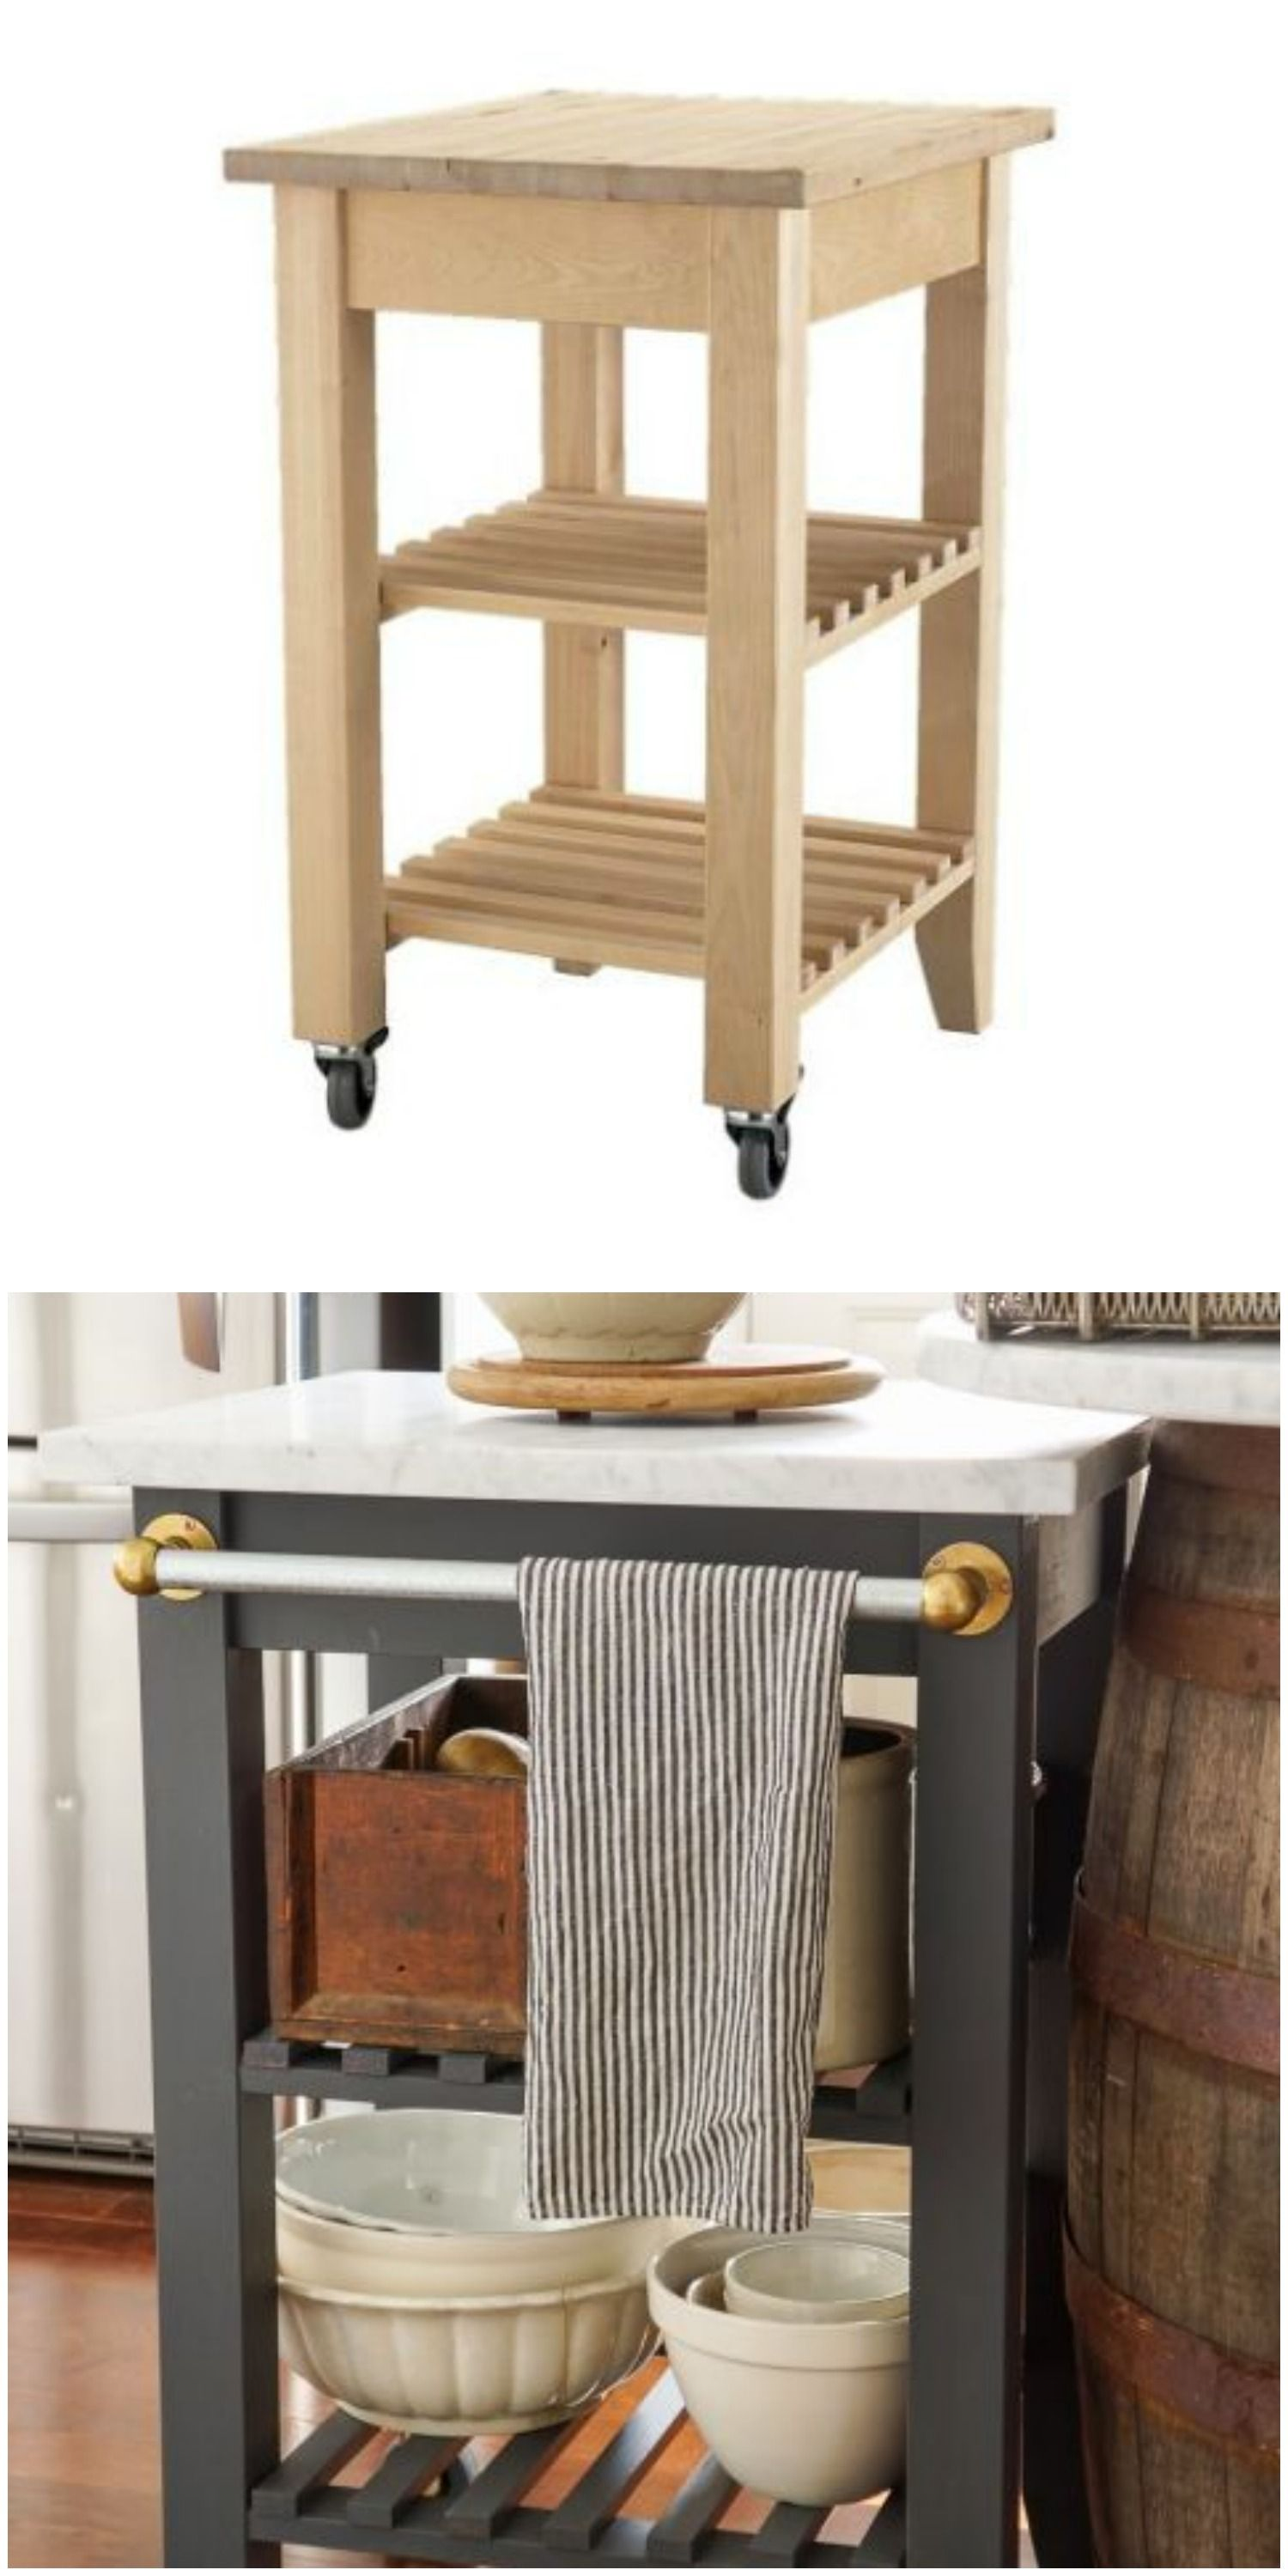 The 21 Coolest IKEA Hacks We've Ever Seen | Portable kitchen island ...